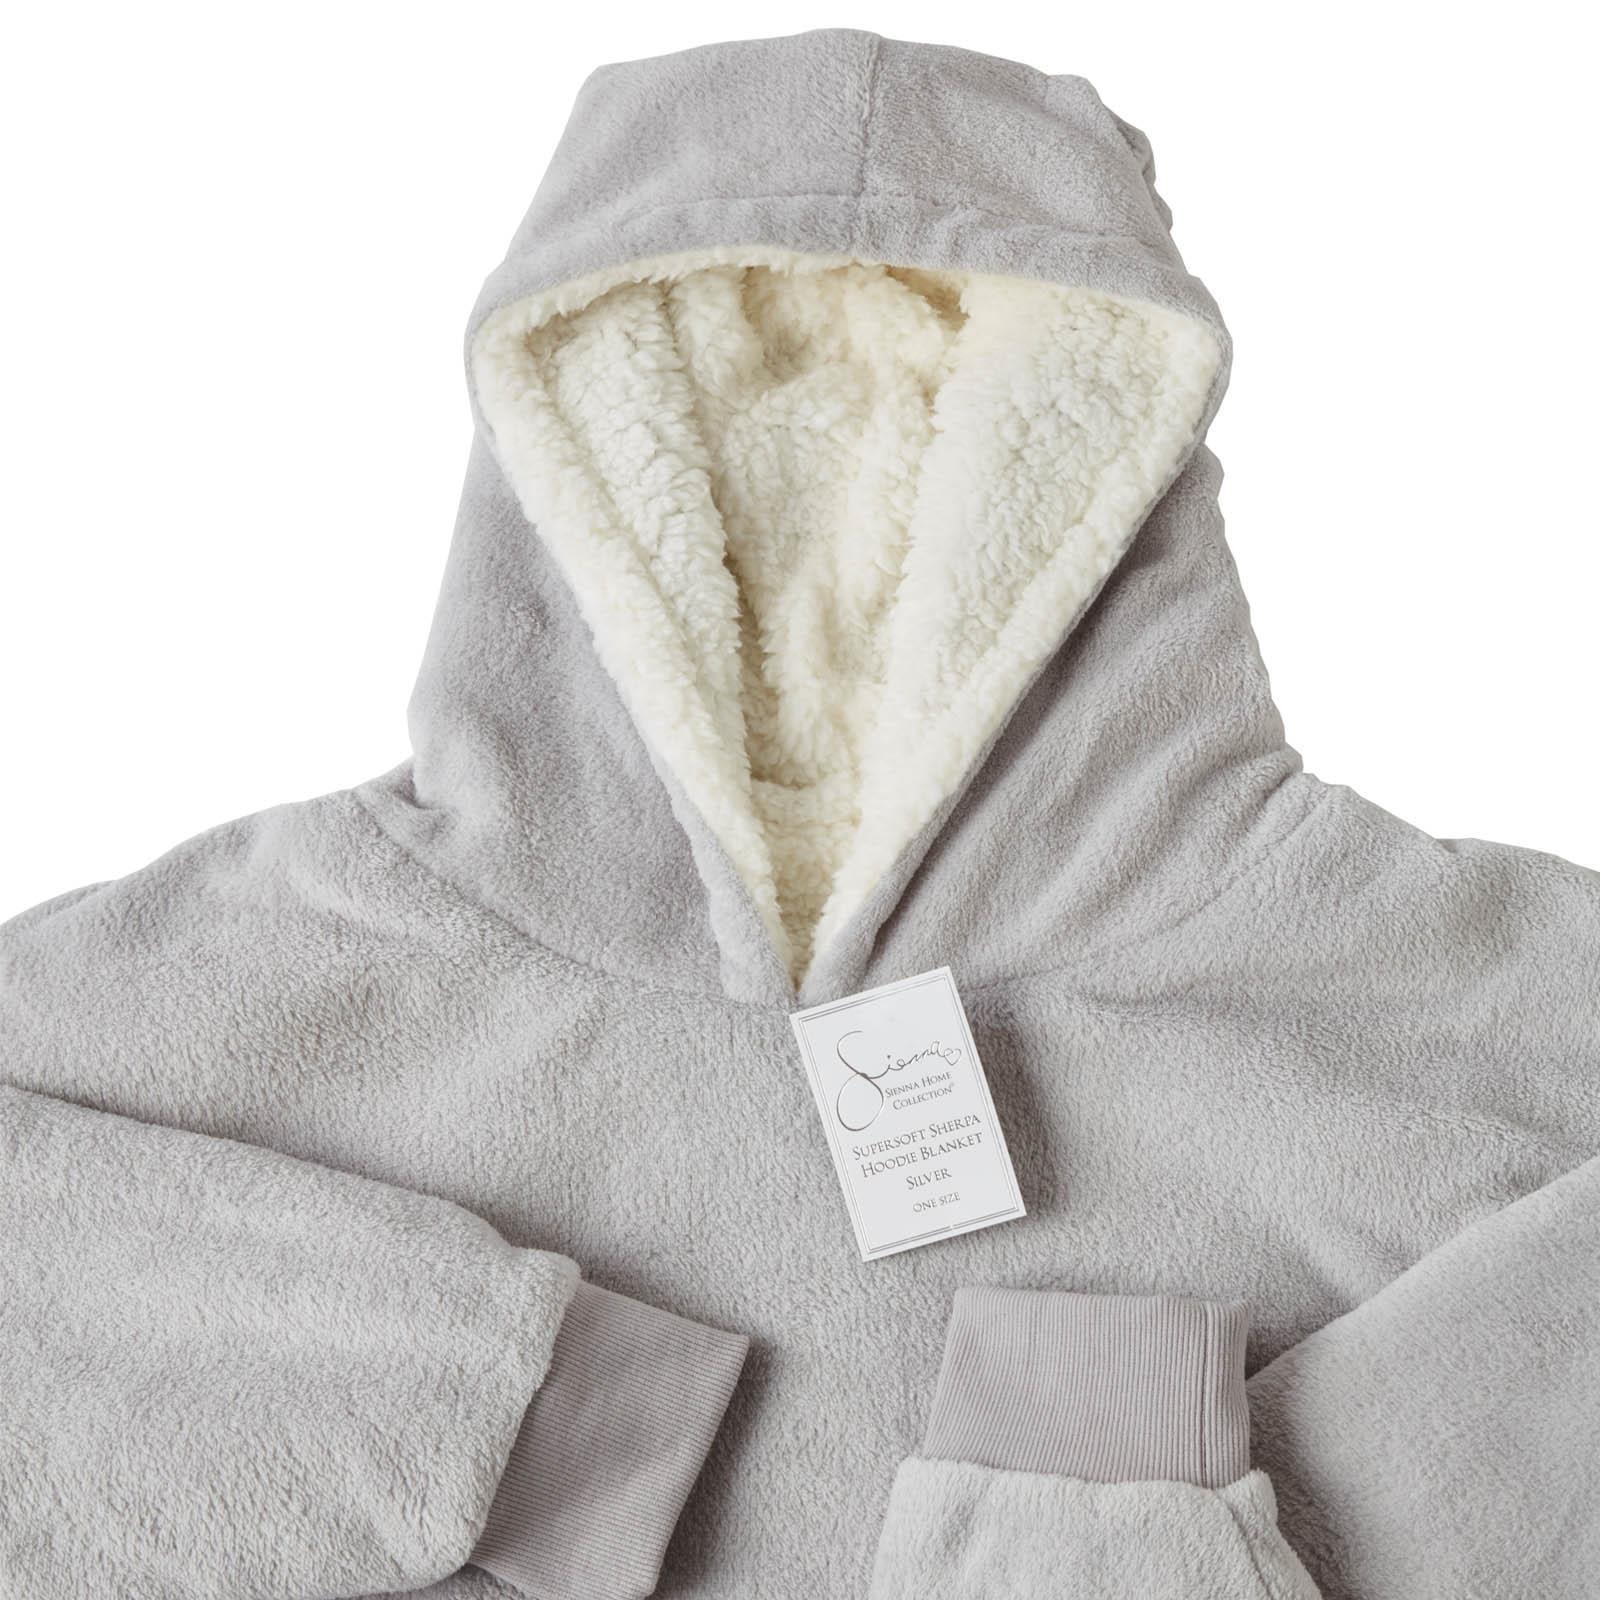 Sienna-Hoodie-Blanket-Oversized-Ultra-Plush-Sherpa-Giant-Big-Hooded-Sweatshirt thumbnail 19